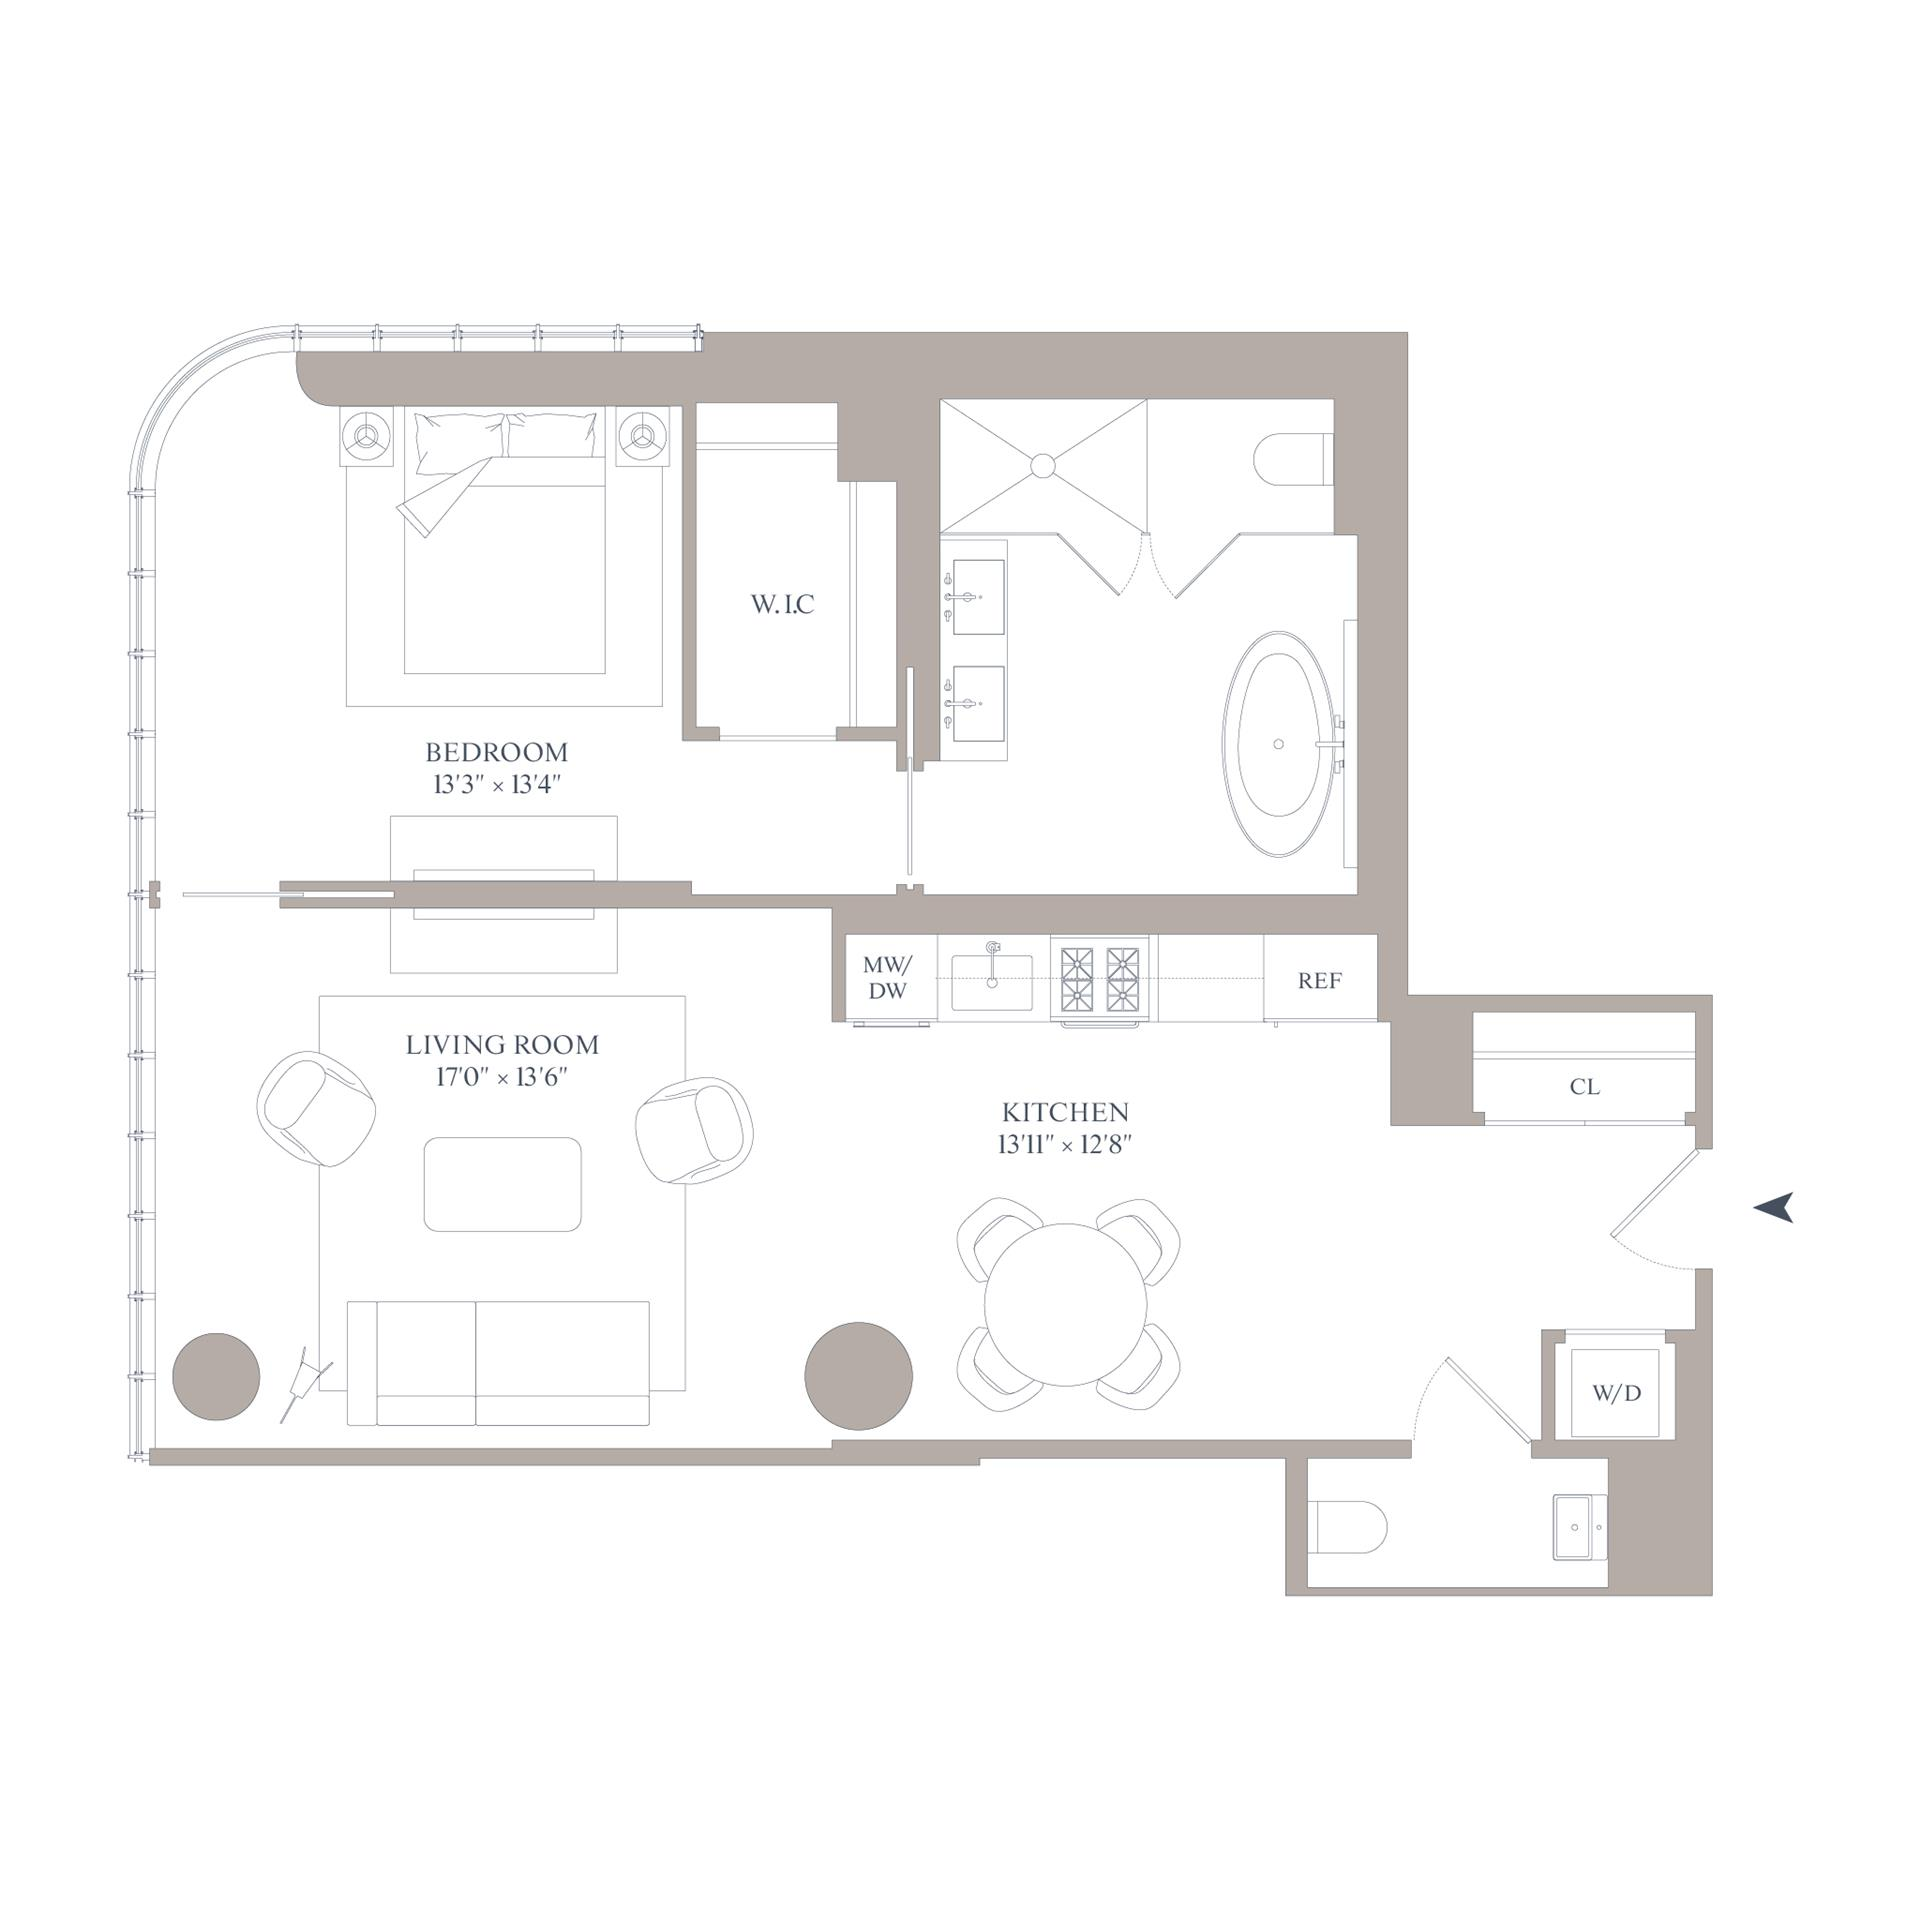 Floor plan of 565 Broome St, S10A - SoHo - Nolita, New York